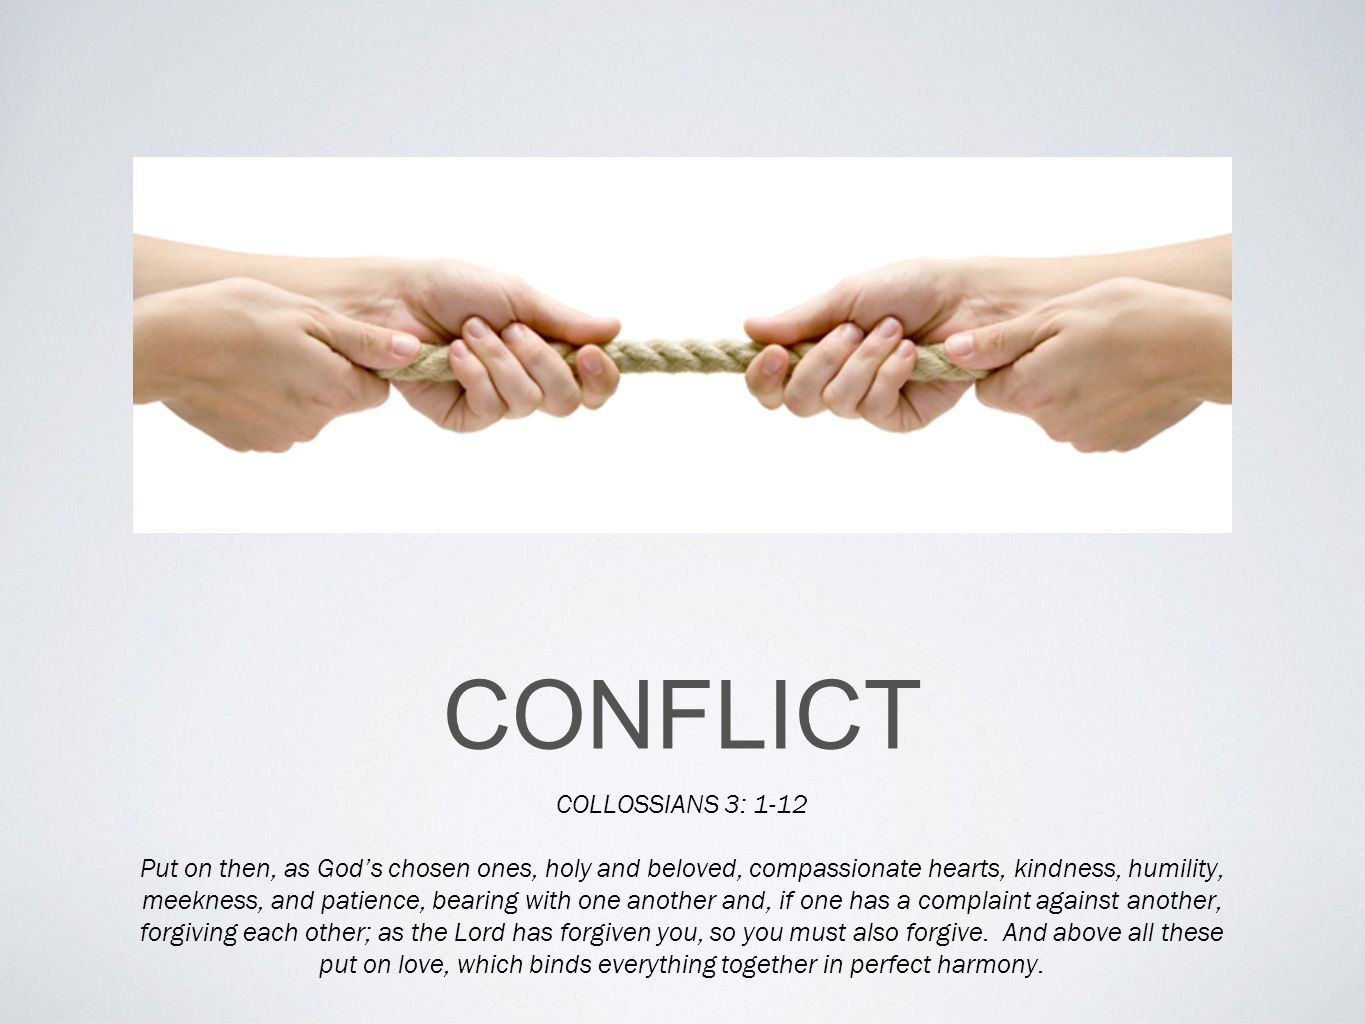 CONFLICT COLLOSSIANS 3: 1-12 Put on then, as God's chosen ones, holy and beloved, compassionate hearts, kindness, humility, meekness, and patience, bearing with one another and, if one has a complaint against another, forgiving each other; as the Lord has forgiven you, so you must also forgive.